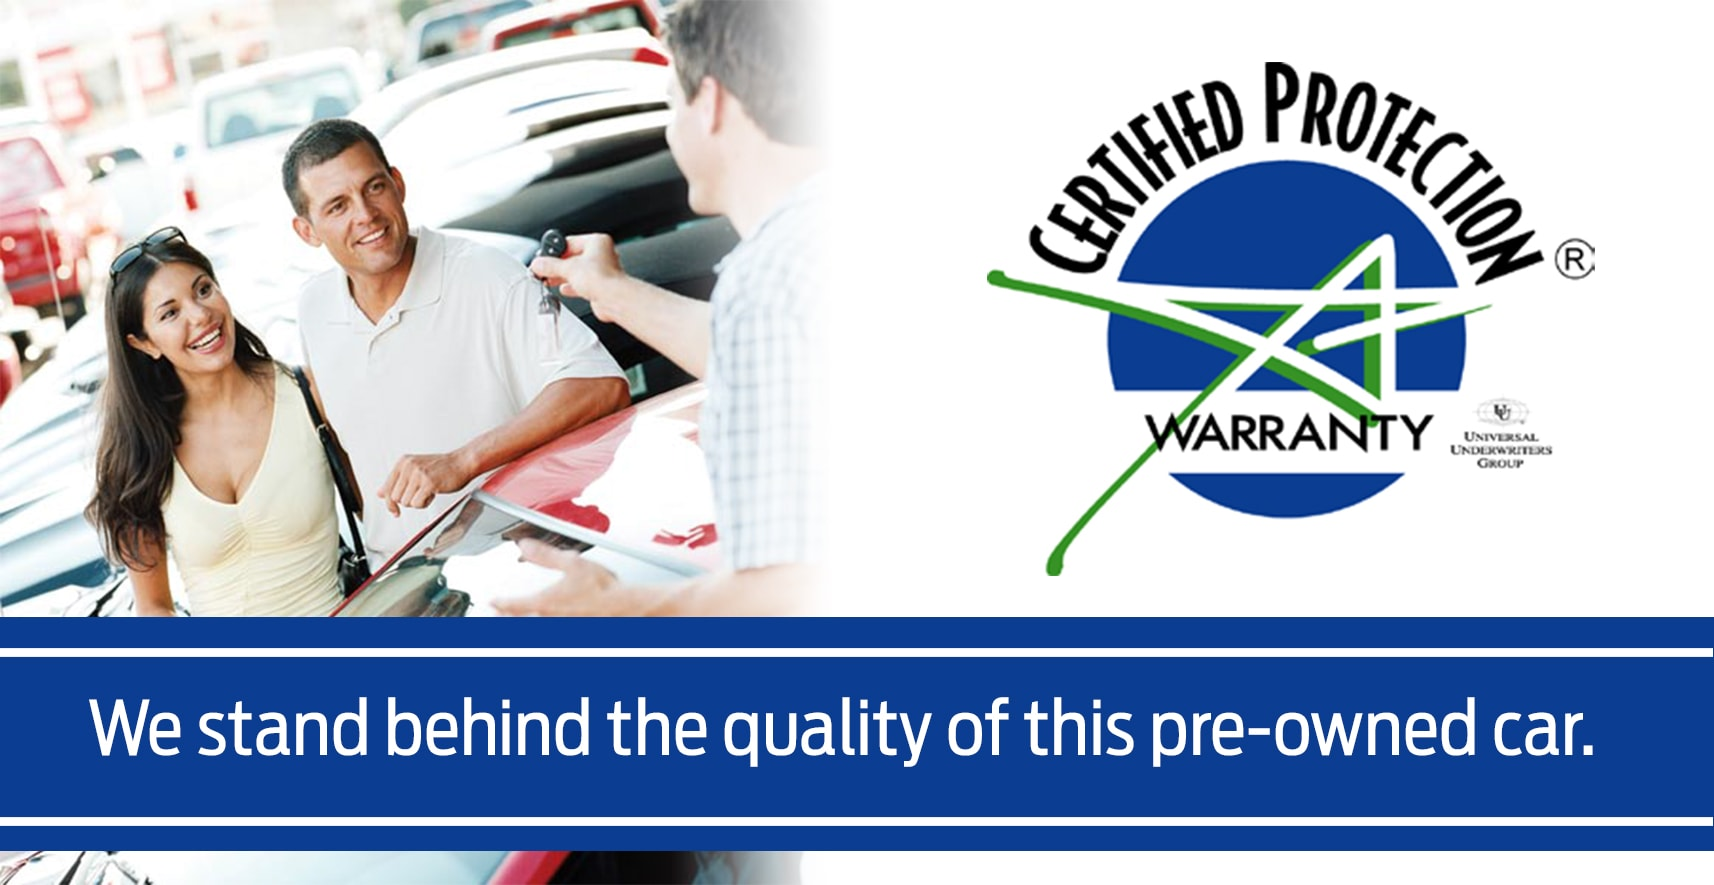 Keith Pierson Toyota Certified Used Cars